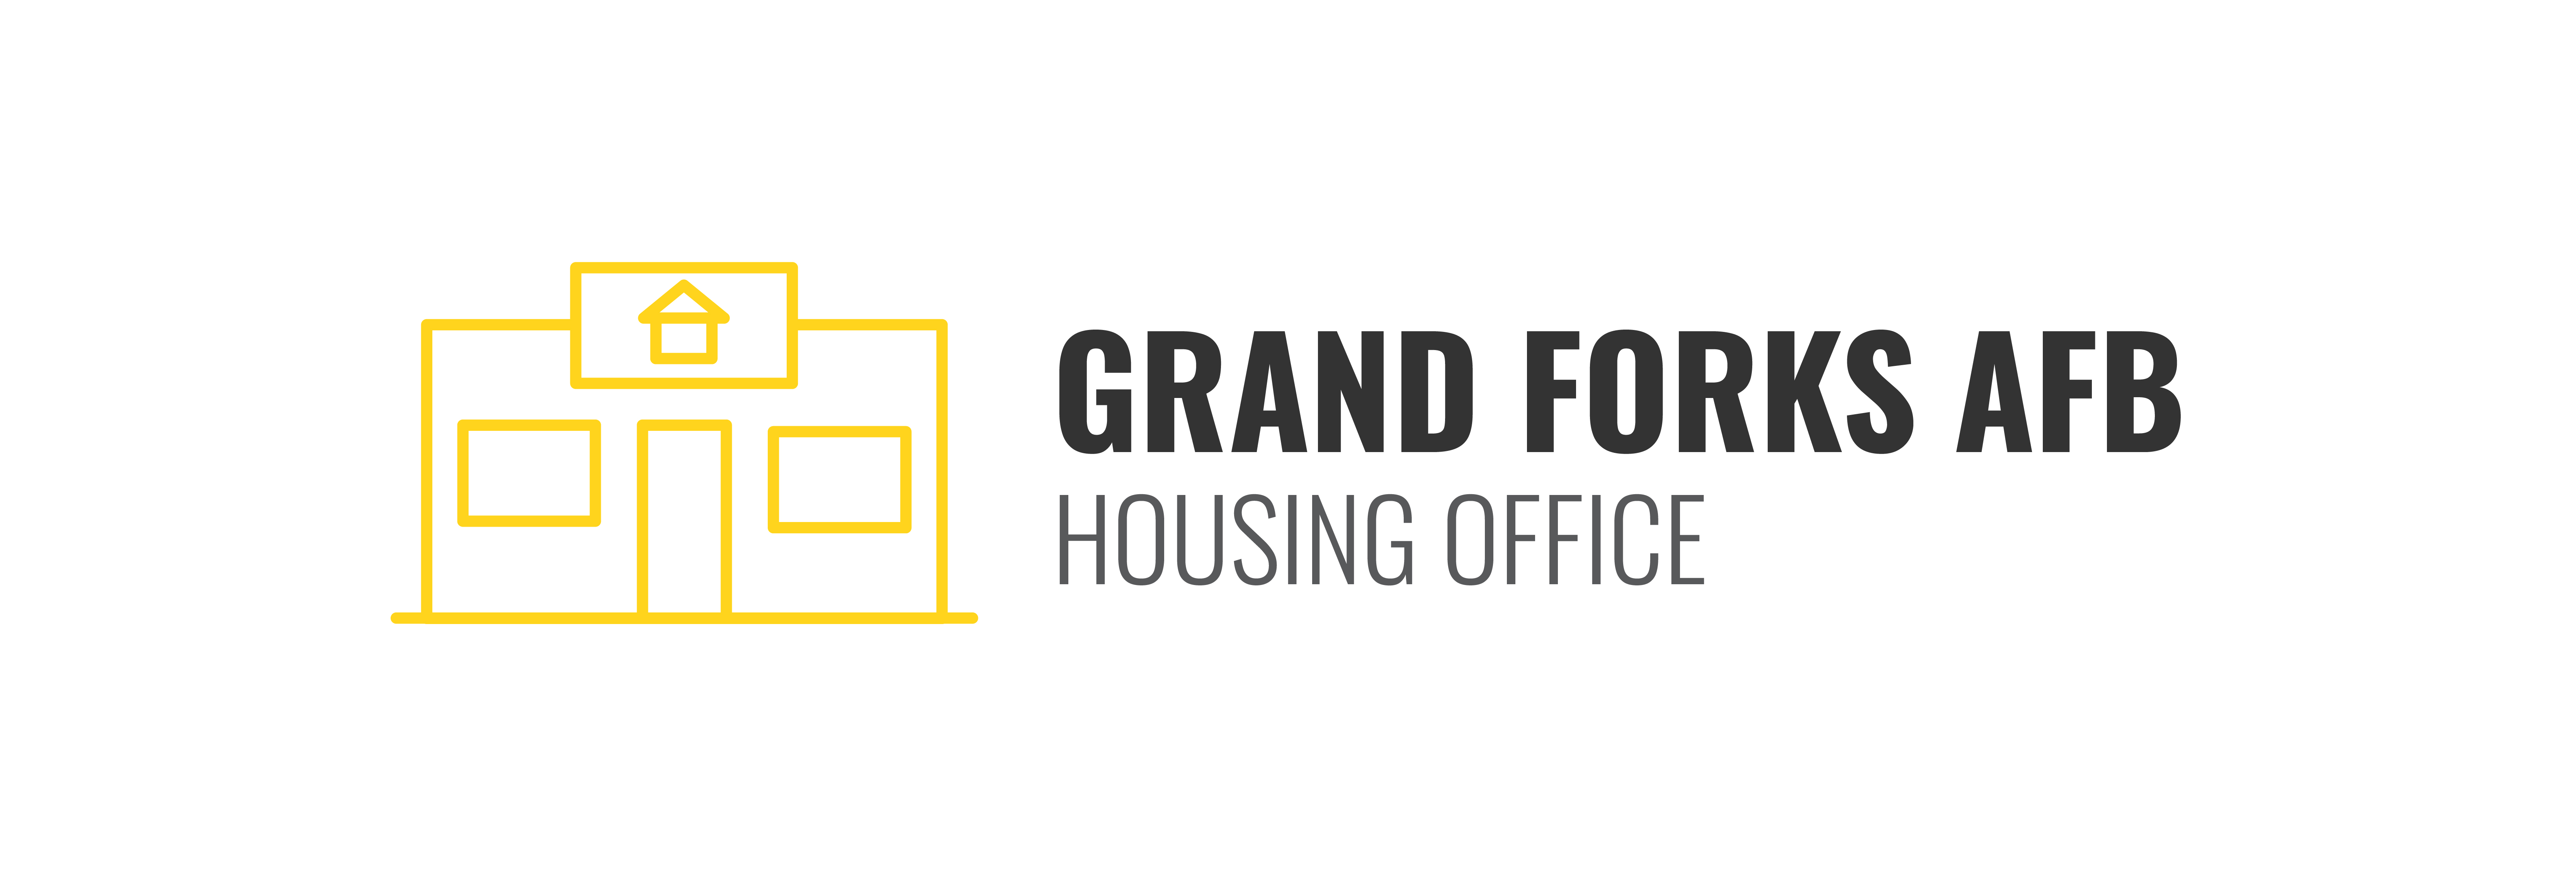 Grand Forks AFB Housing Office